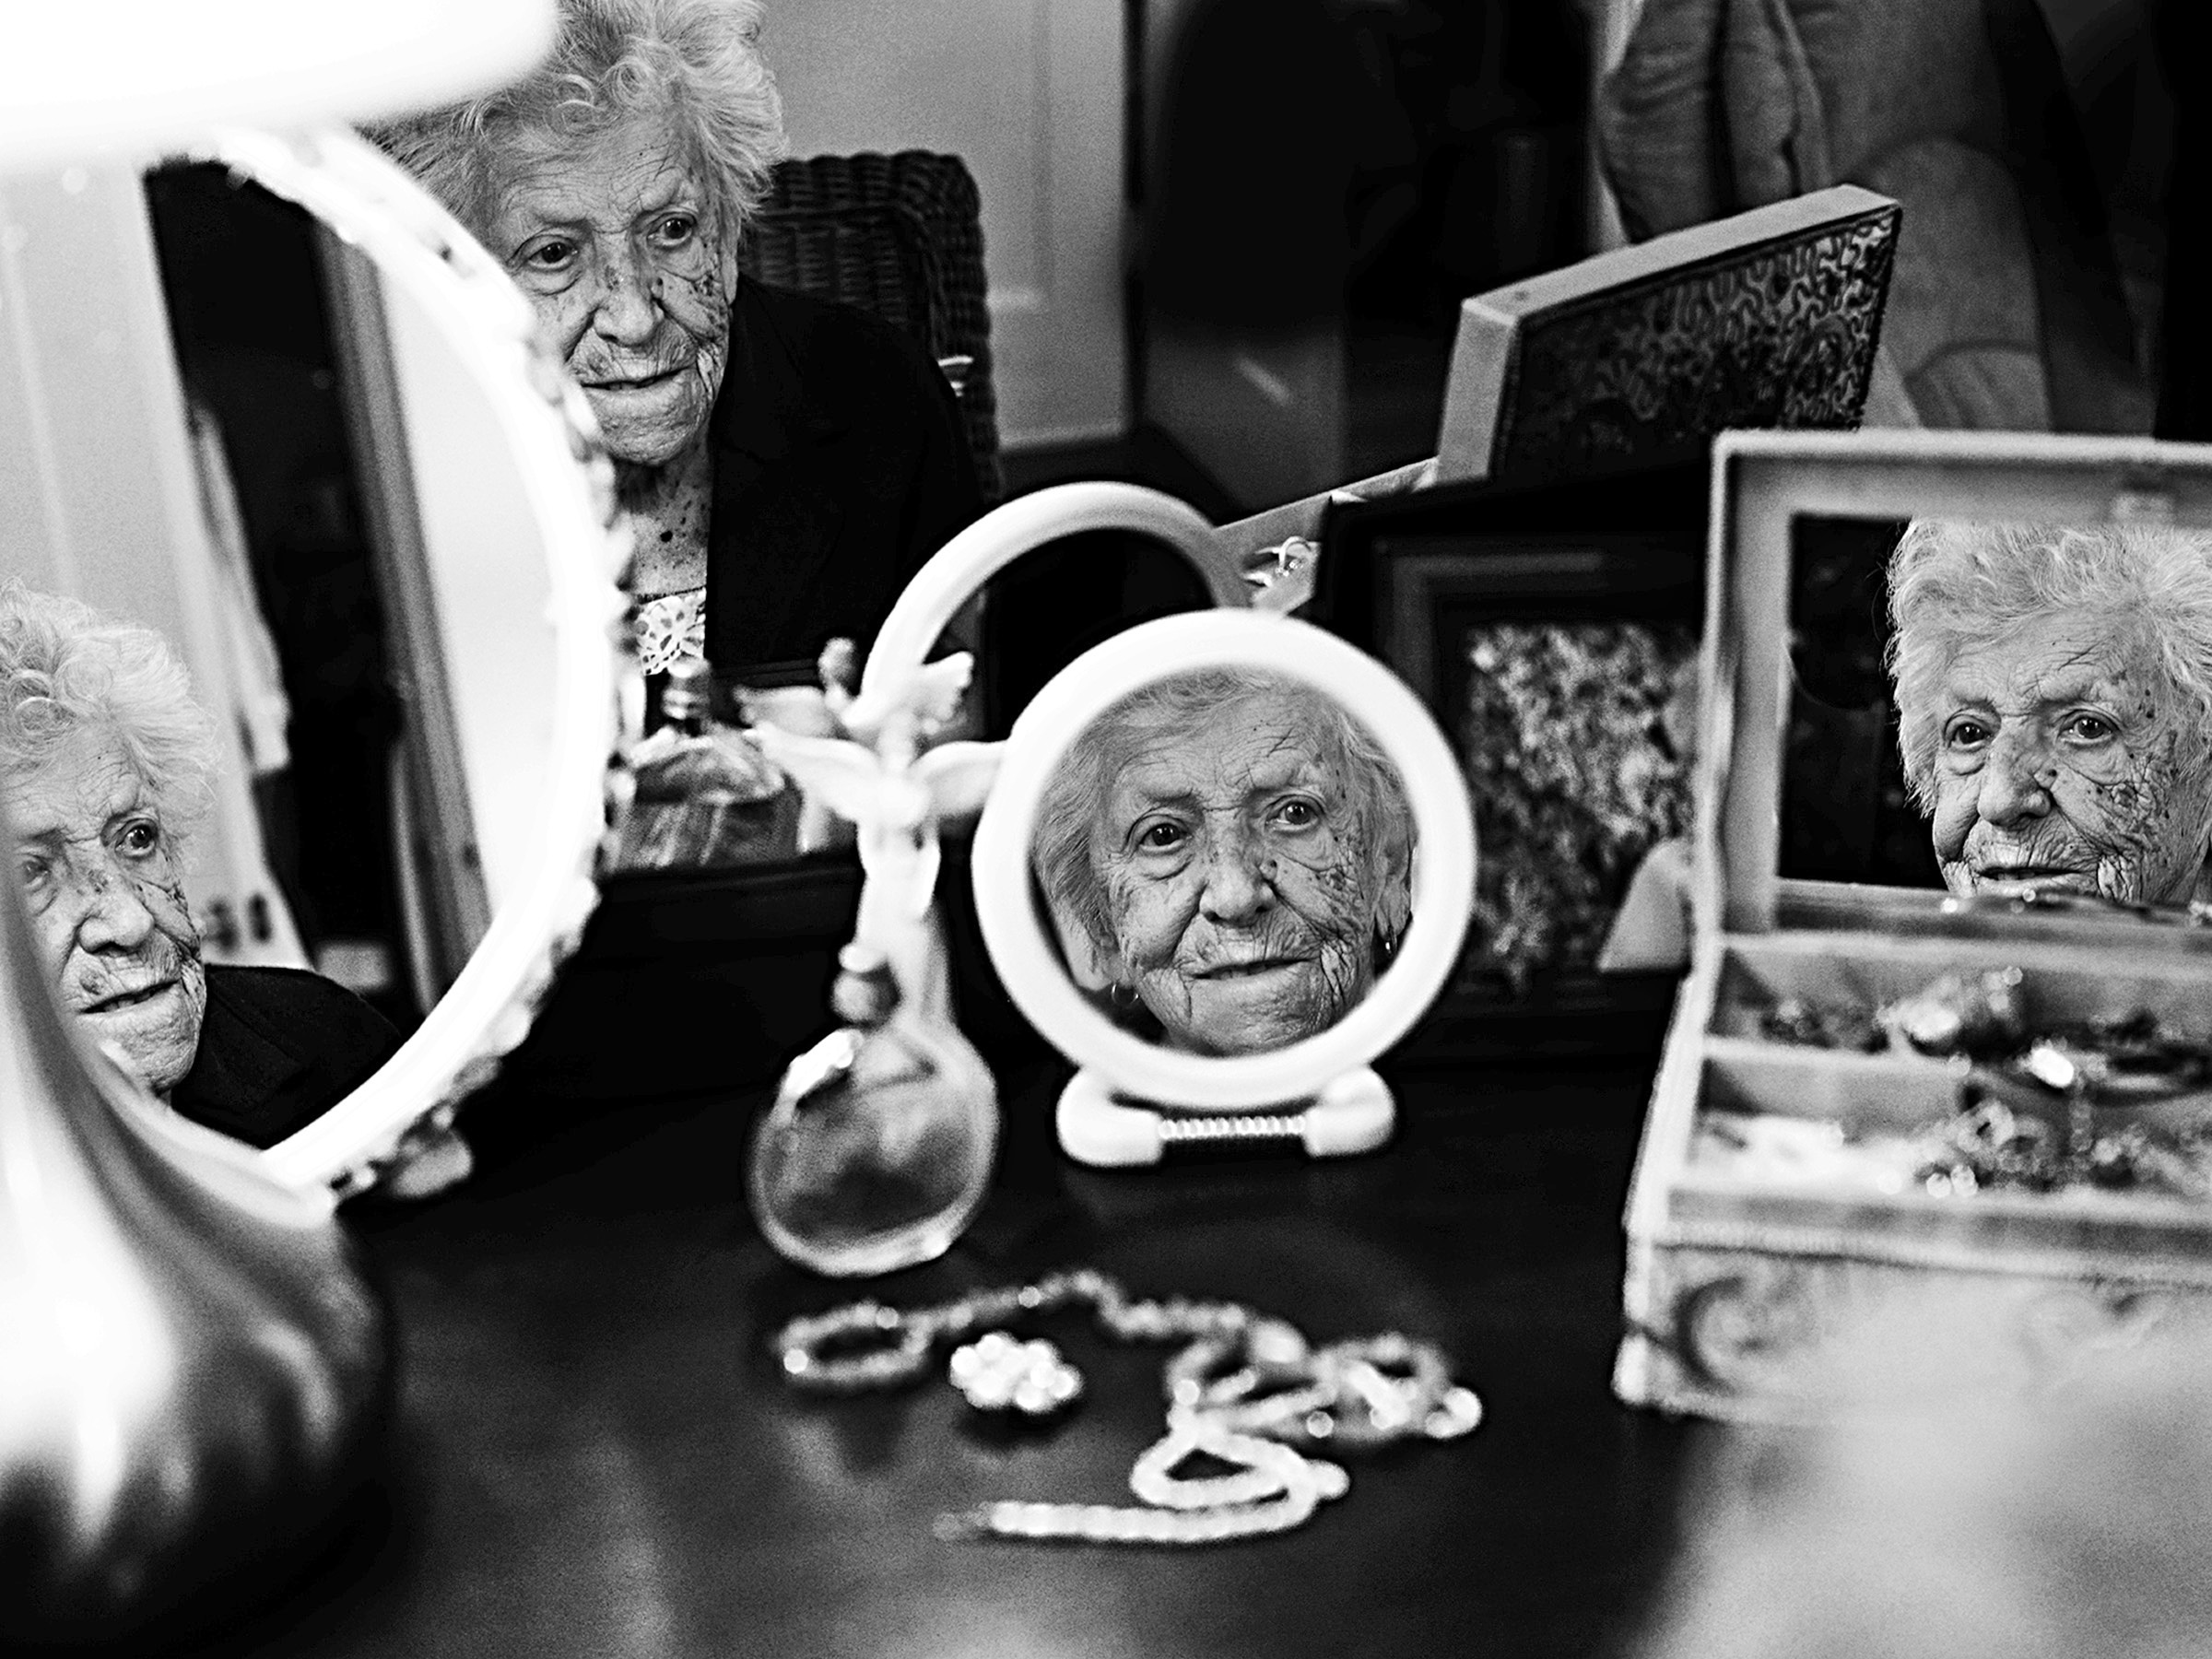 """When I was young I had long hair, nice legs and curves. Young ladies today all strive to be skinny, but I think that real beauty is natural beauty. We are who we are, and that's all that matters."" Anne-Marie Pronovost, 100 years old. She died in 2017. (Arianne Clément/GroundTruth)"